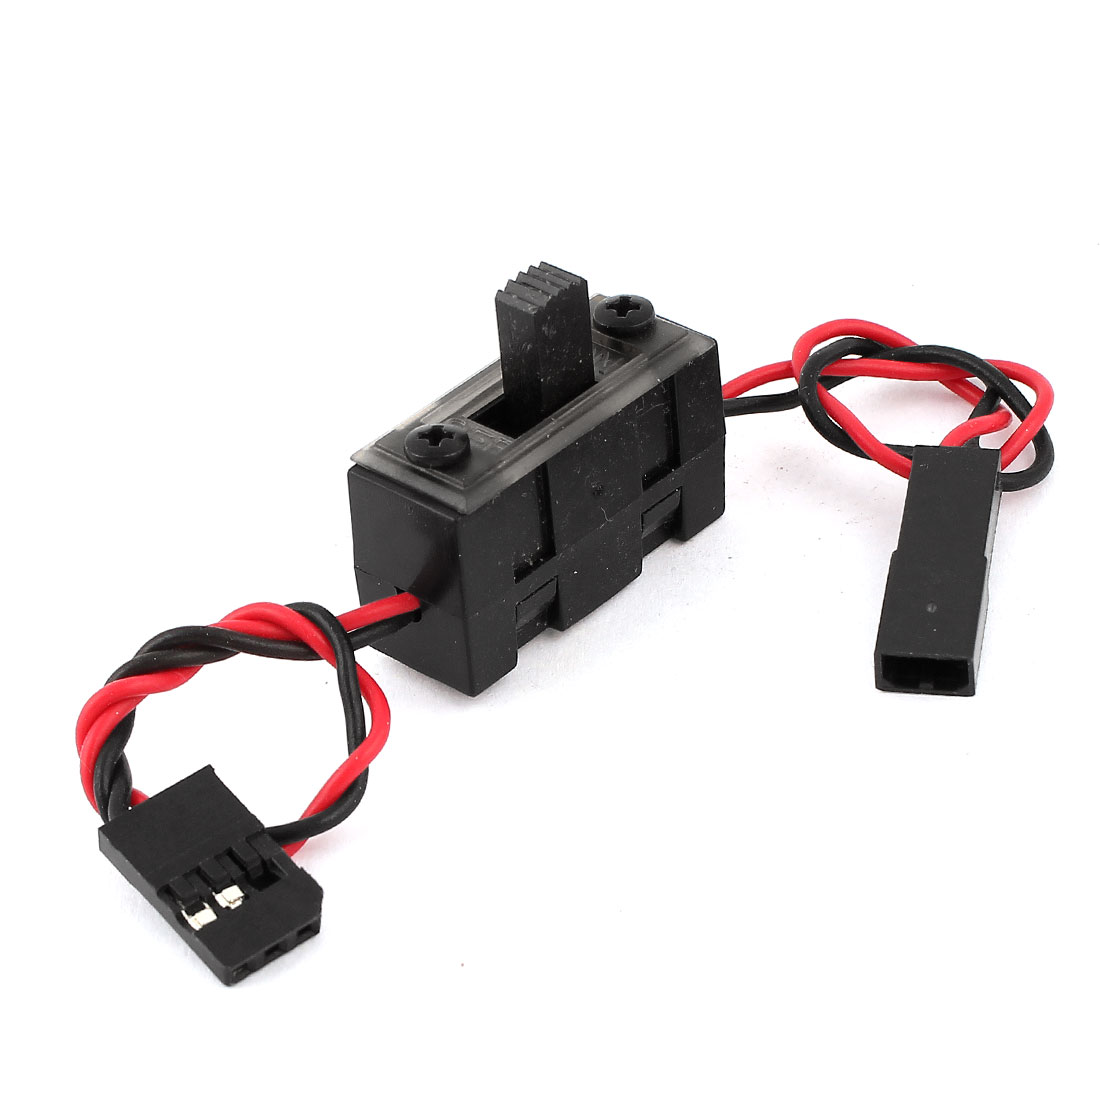 JR Connector ON/OFF Position Black Receiver Switch for RC 1/10 Model Car